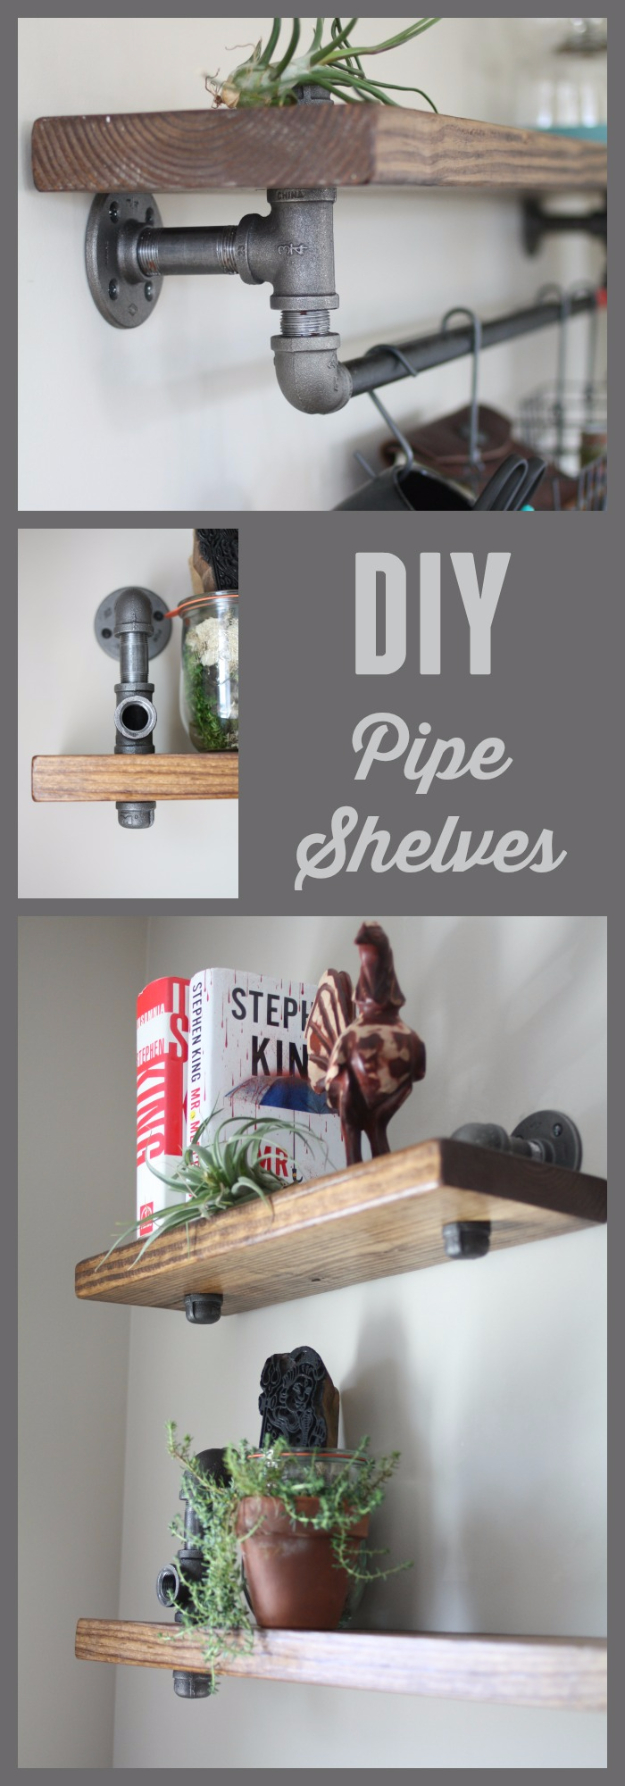 DIY Shelves and Do It Yourself Shelving Ideas - Industrial Pipe and Wood Bookshelves - Easy Step by Step Shelf Projects for Bedroom, Bathroom, Closet, Wall, Kitchen and Apartment. Floating Units, Rustic Pallet Looks and Simple Storage Plans #diy #diydecor #homeimprovement #shelves